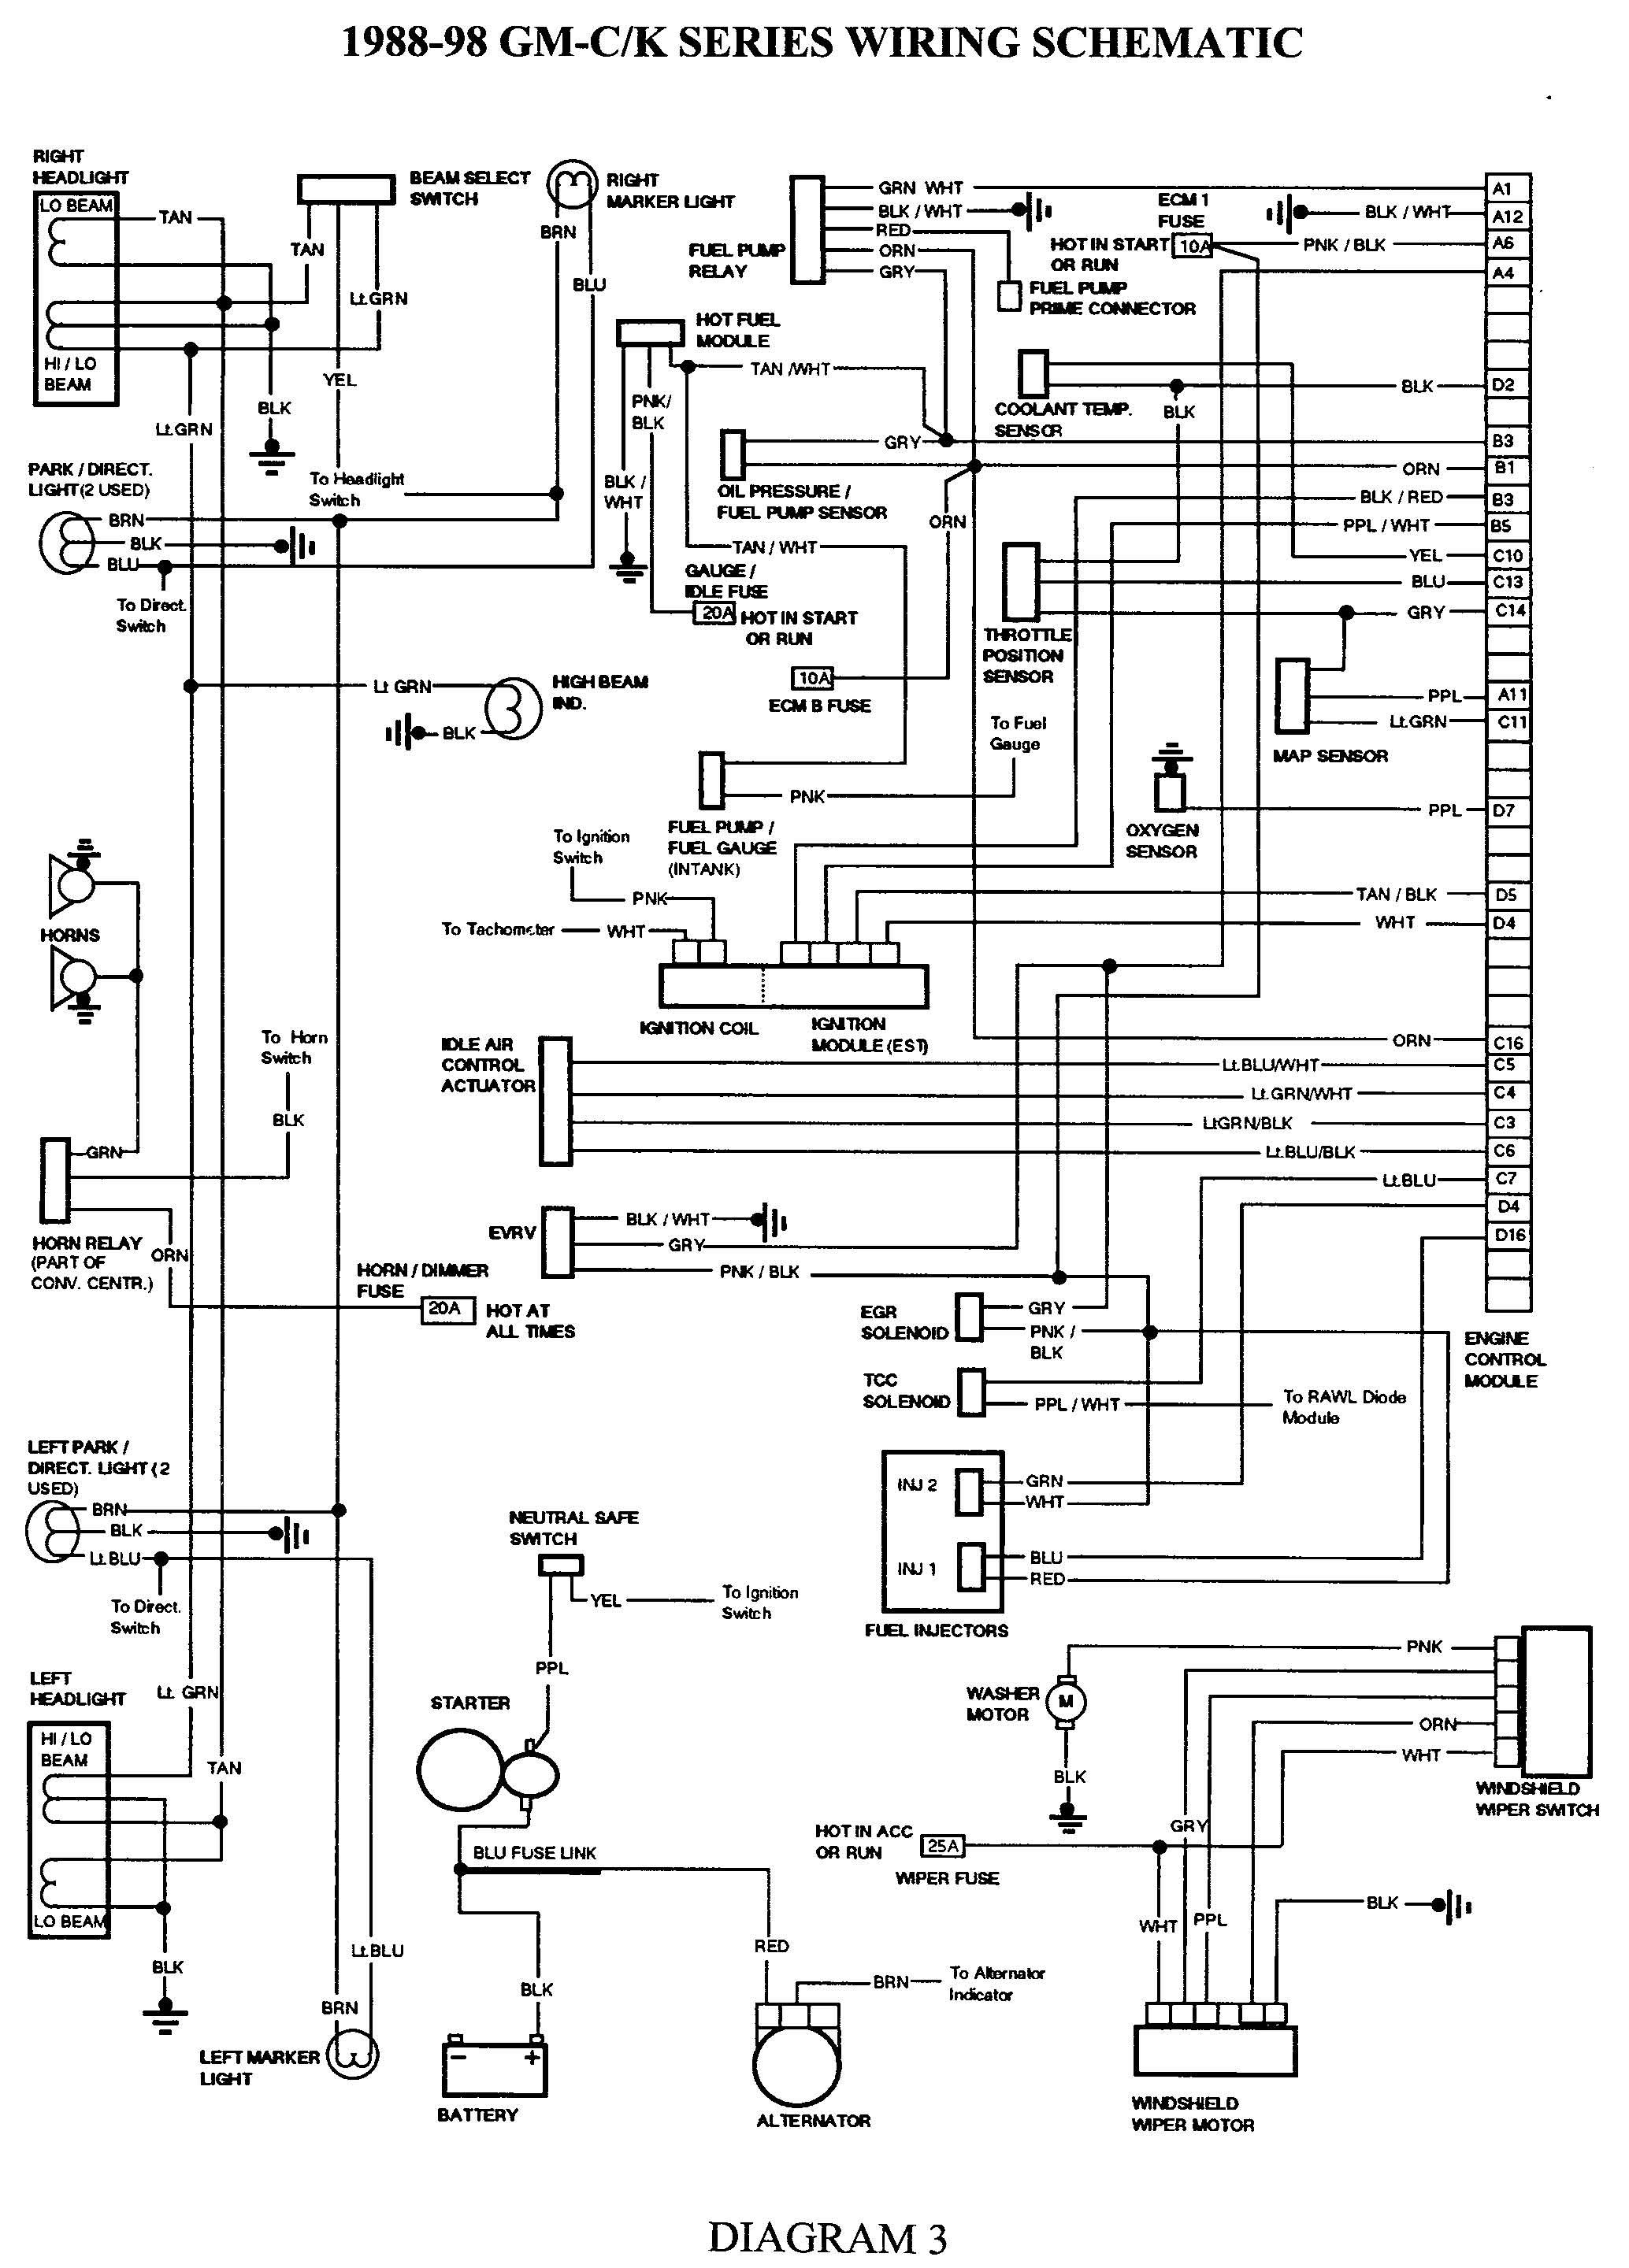 1990 gmc k1500 wiring diagram wiring diagram name 1990 gmc truck wiring diagram 1990 gmc truck wiring [ 2068 x 2880 Pixel ]